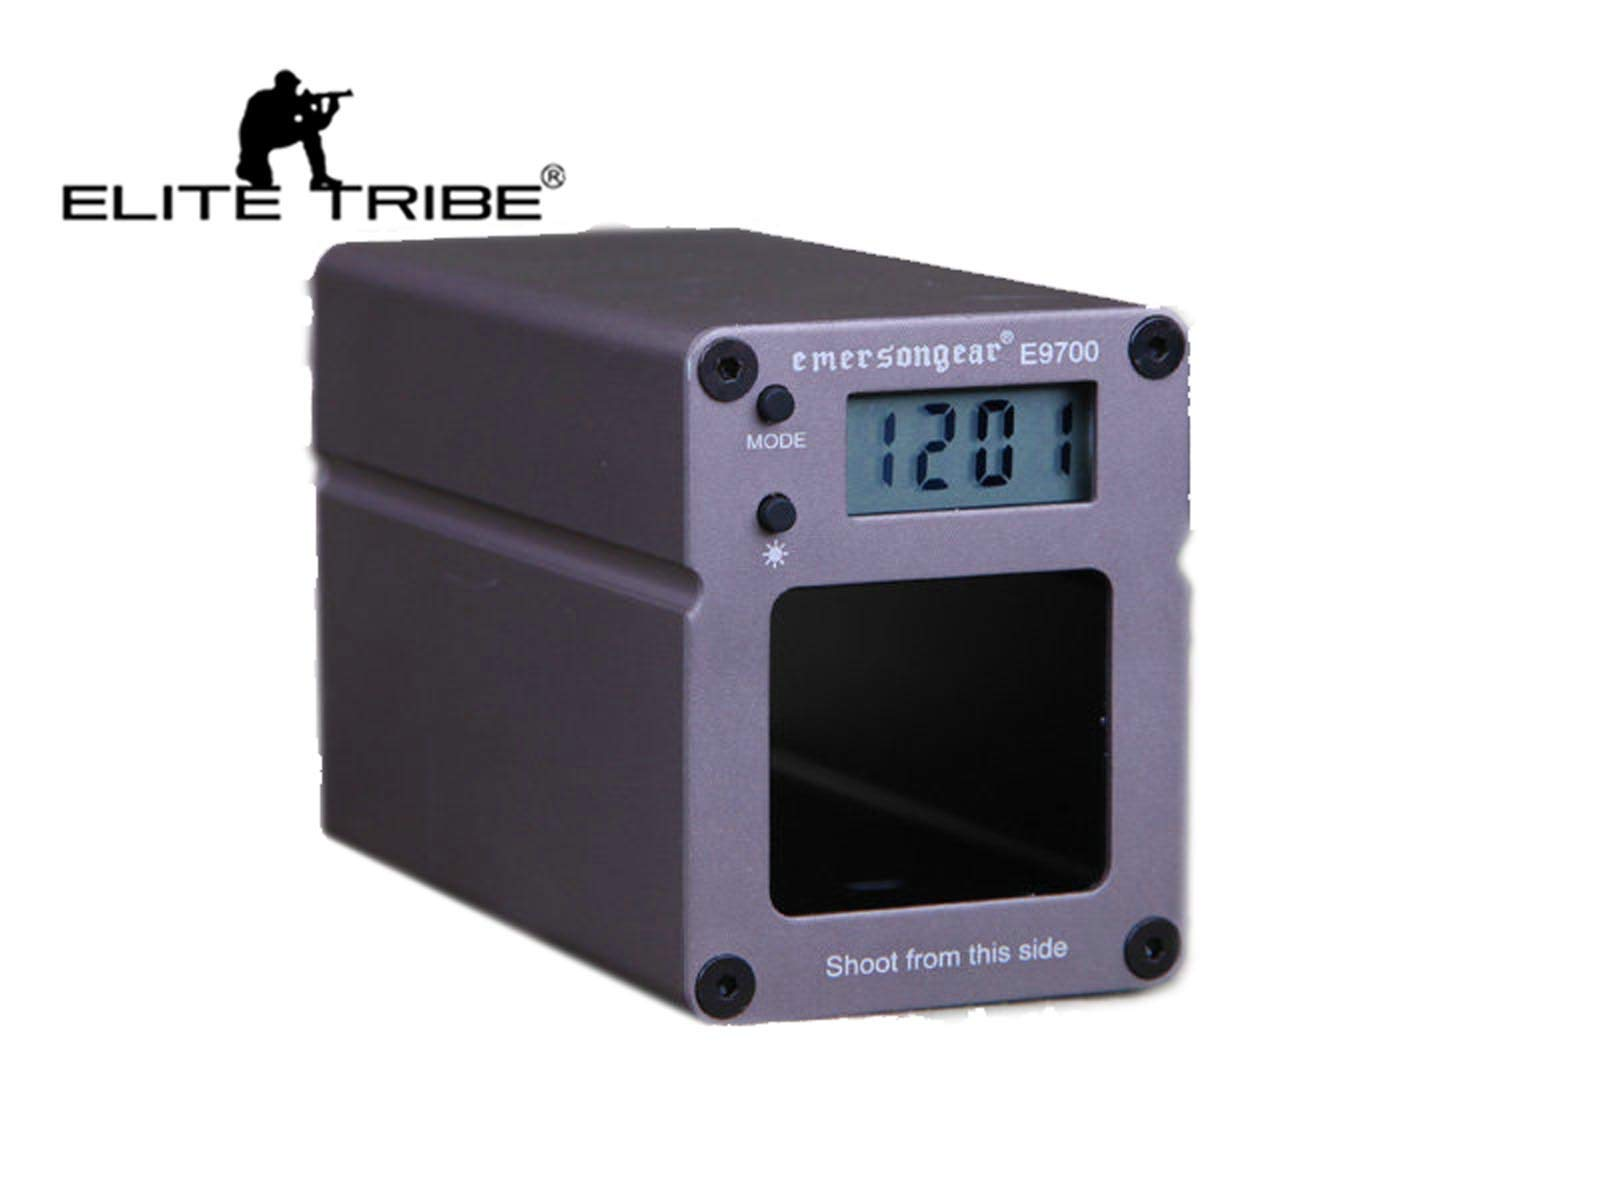 E9700 Shooting Chronograph Speed Examiner with Pixel Tactical Airsoft and Accuracy by Elite Tribe